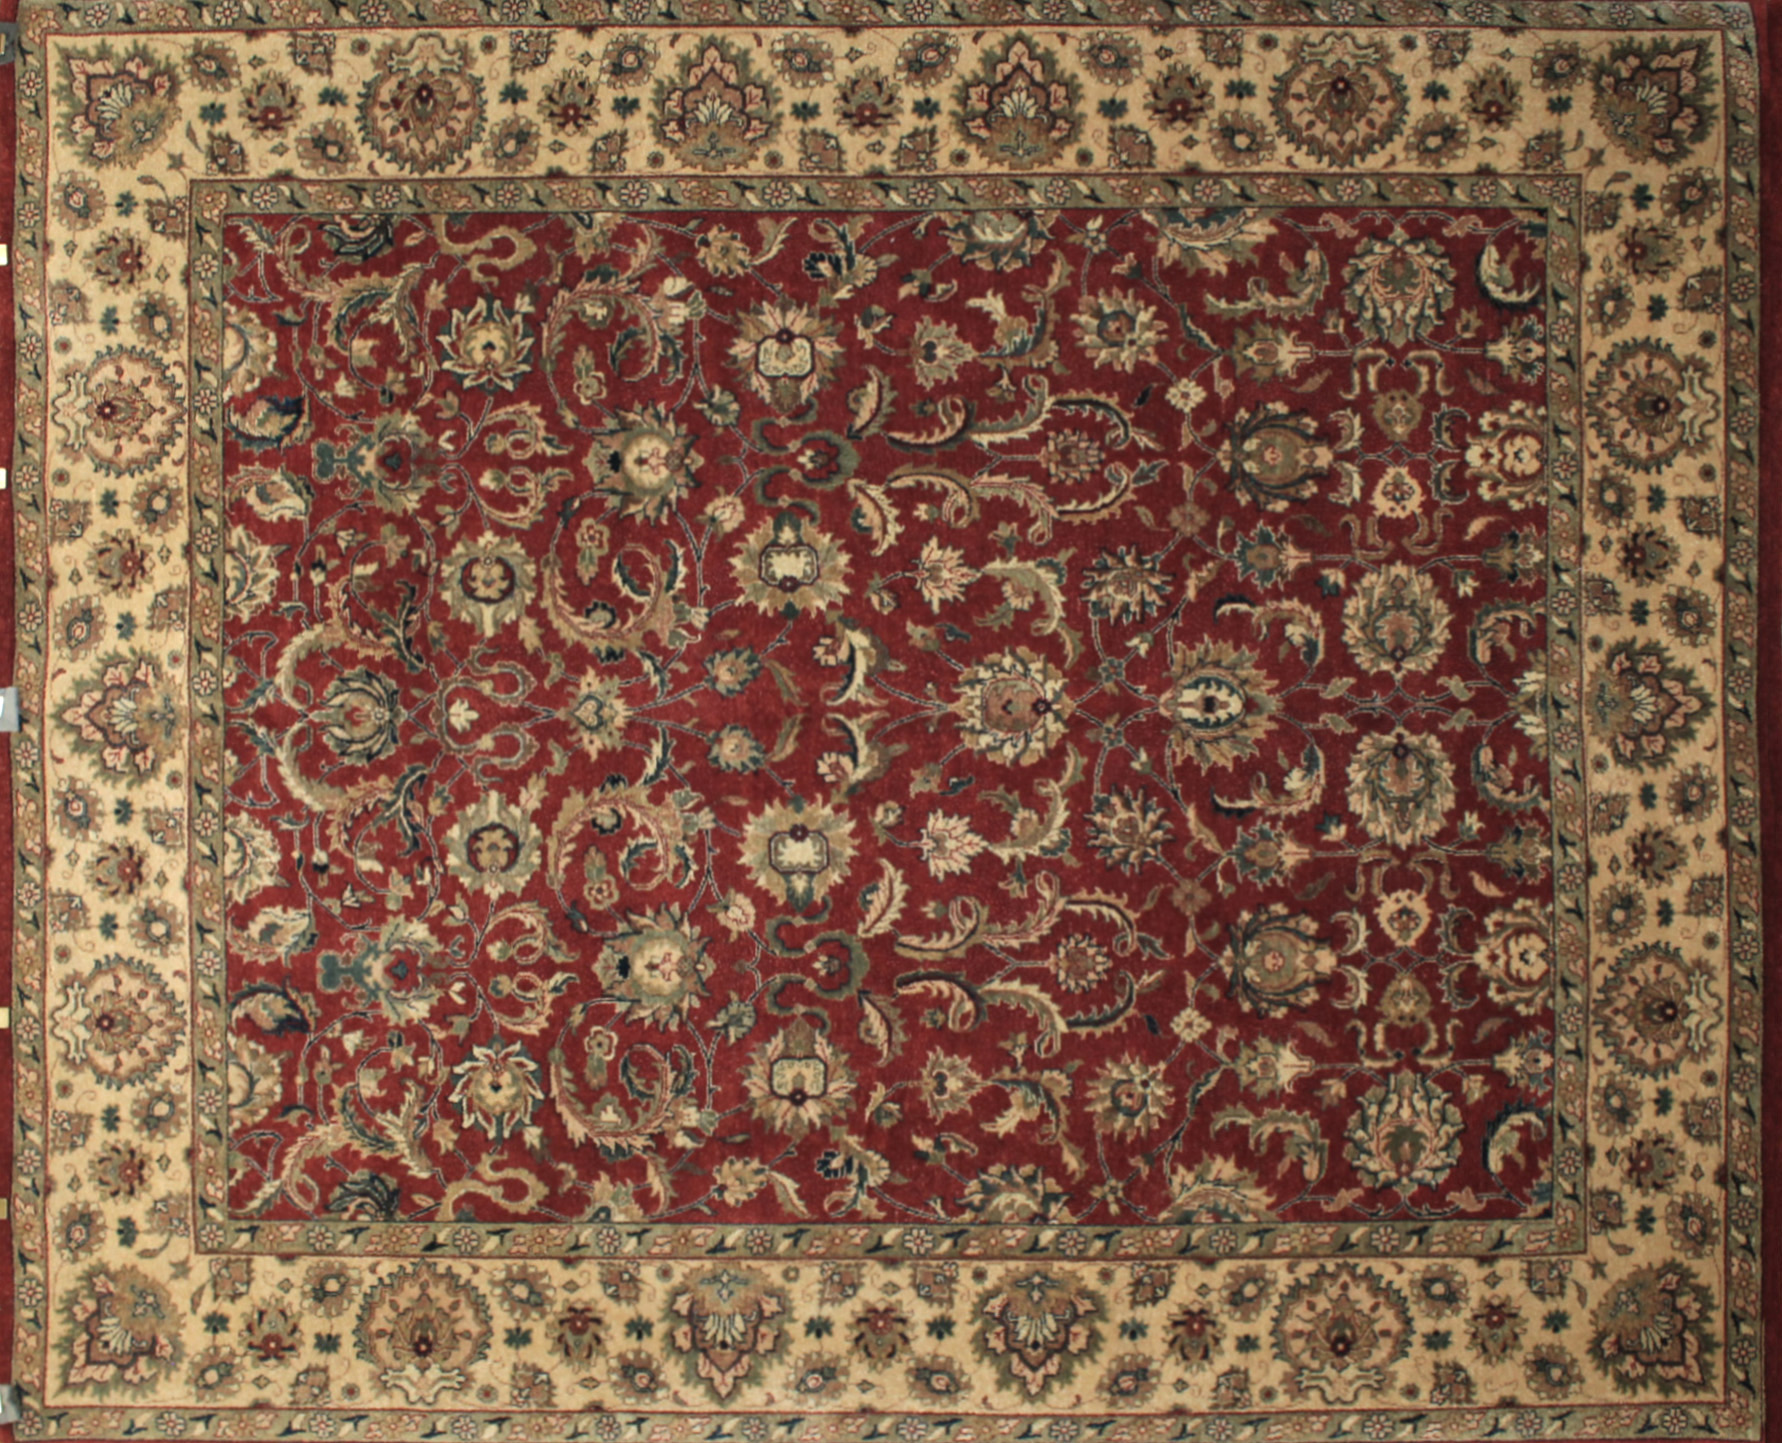 8x10 Traditional Hand Knotted Wool Area Rug - MR6381